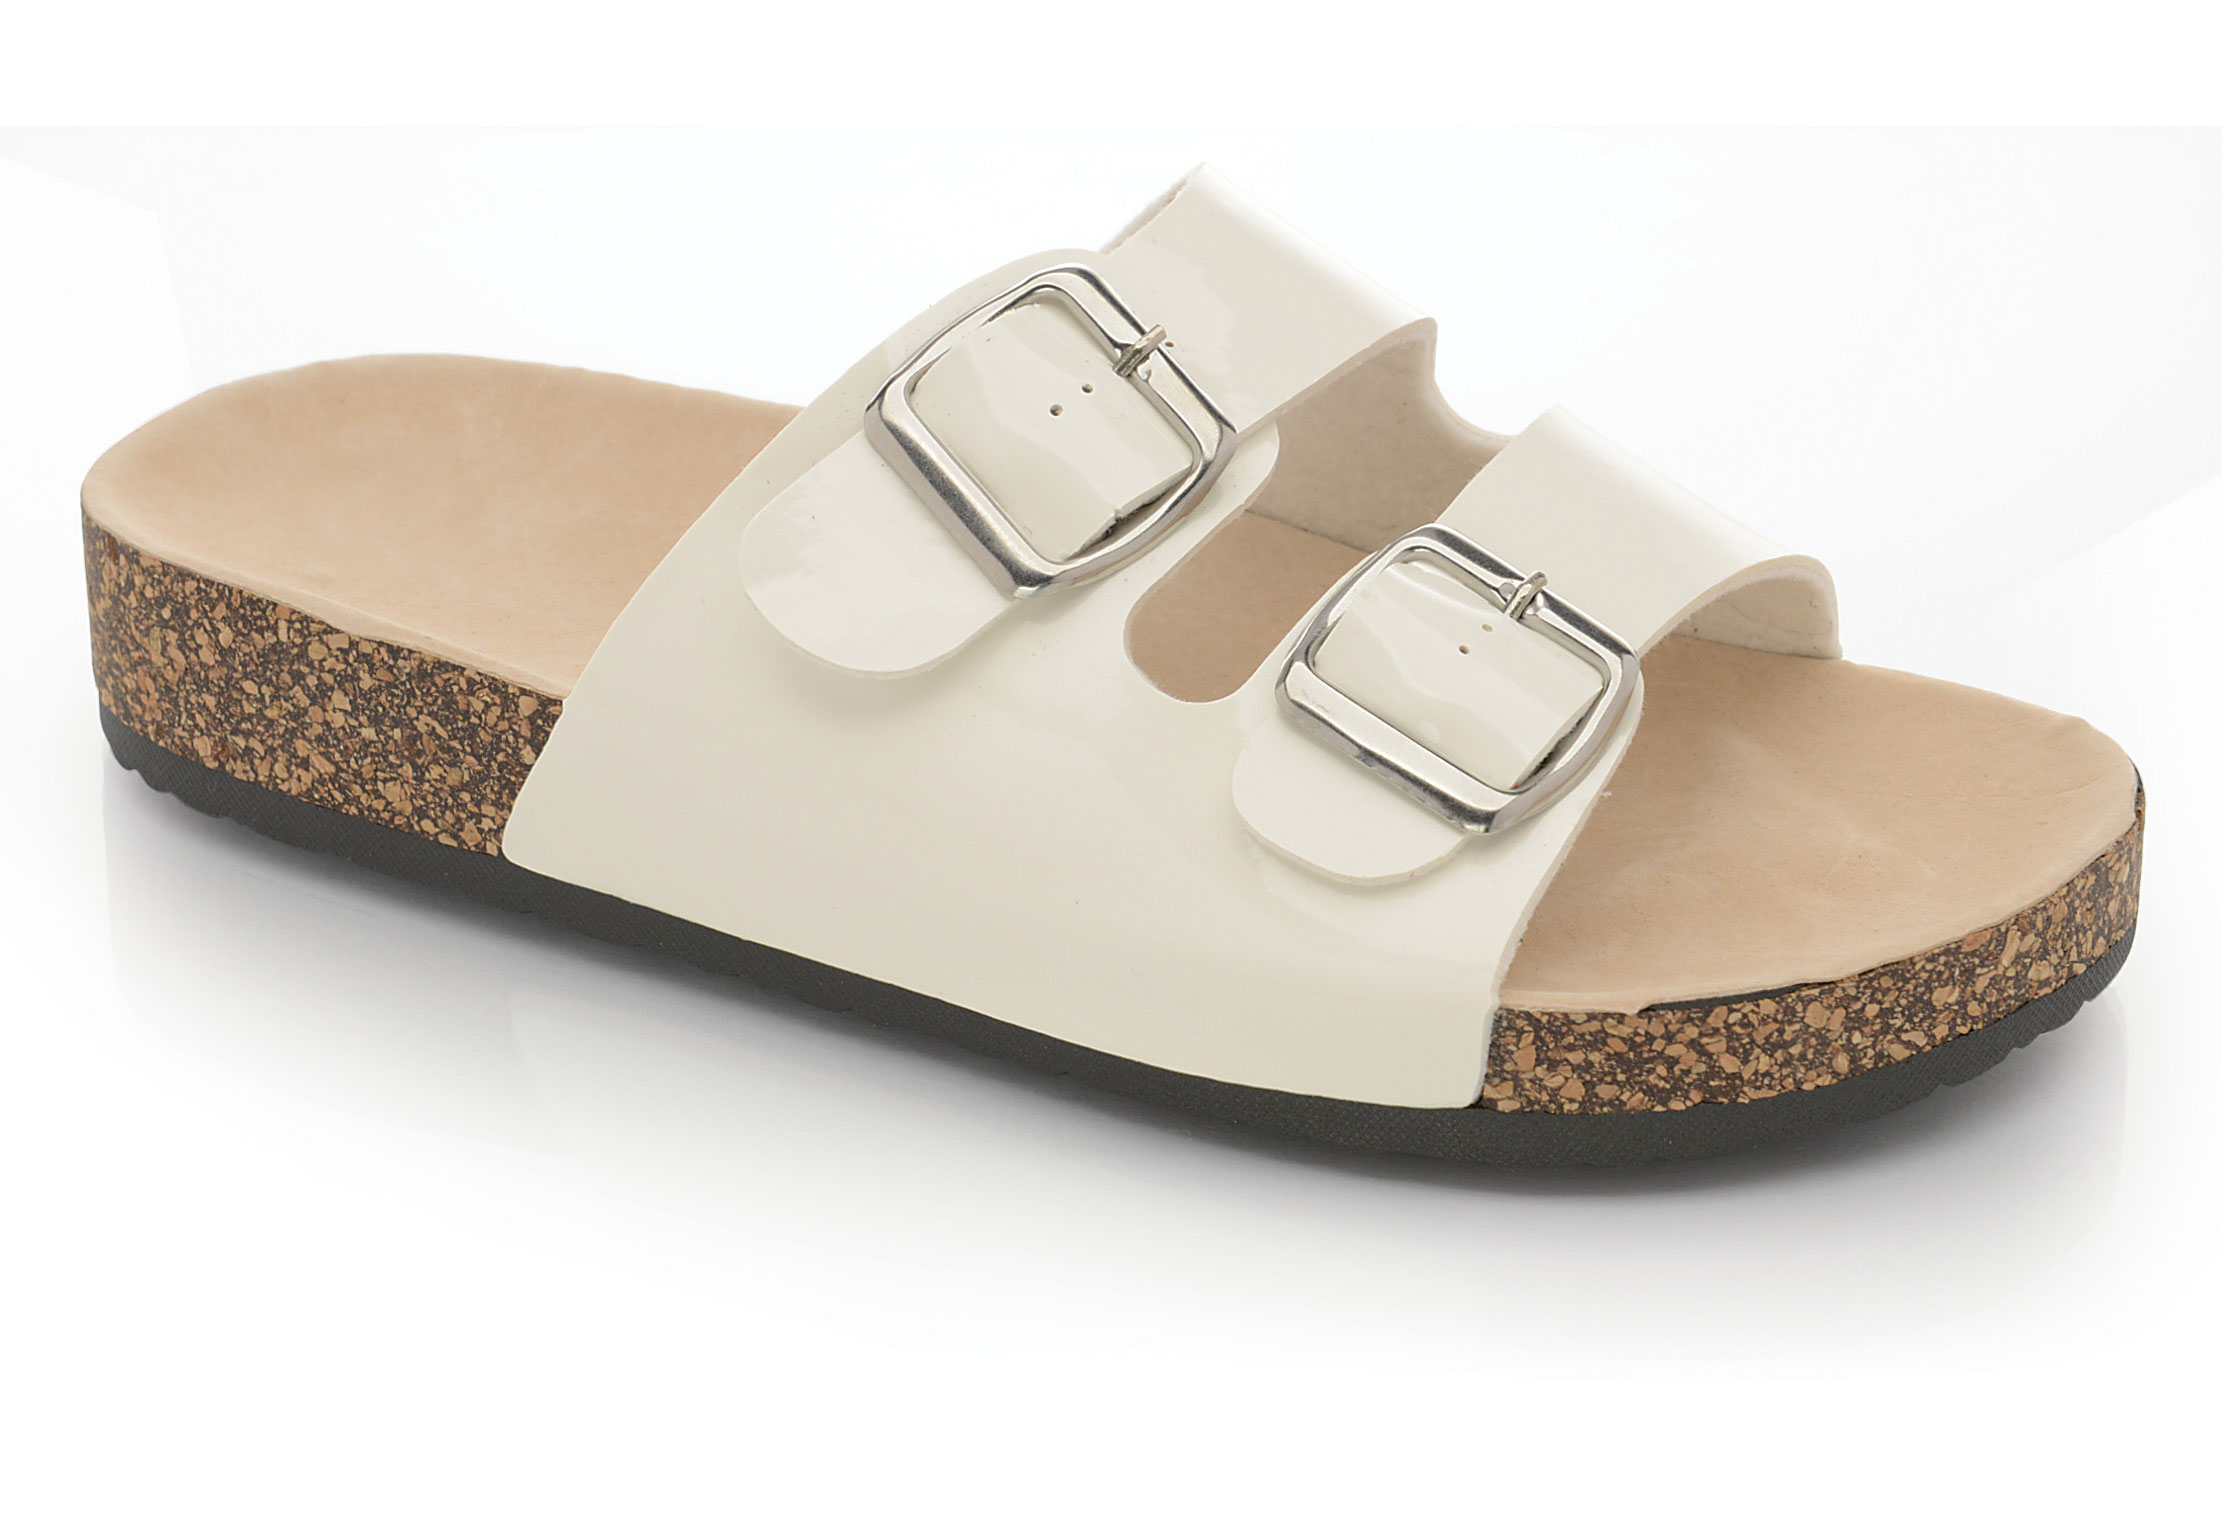 Shop from our wide selection of sandals for women at tubidyindir.ga Free shipping on all orders. Sandals for Women | Designer Sandals for Year Round Wear | Sole Society JavaScript seems to be .